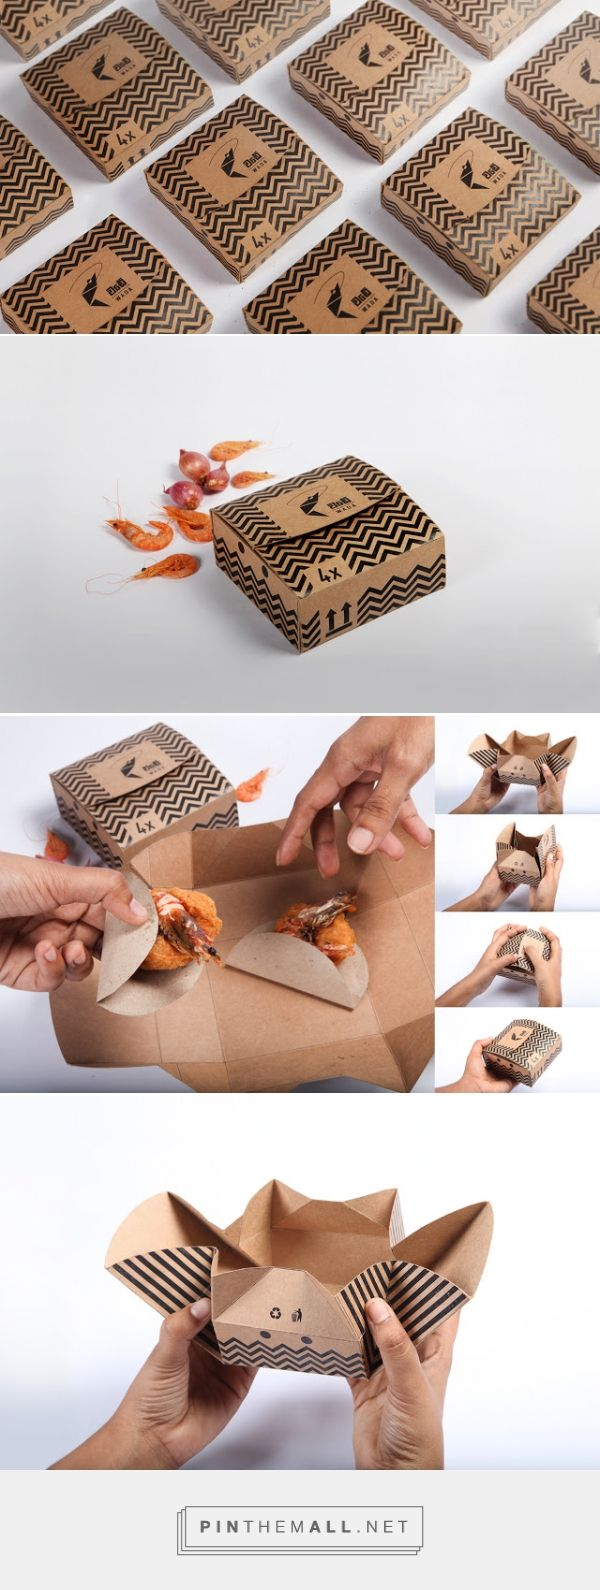 Wada Prawns (Student Project) Packaging of the World - Creative Package Design Gallery - http://www.packagingoftheworld.com/2015/07/wada-prawns-student-project.html